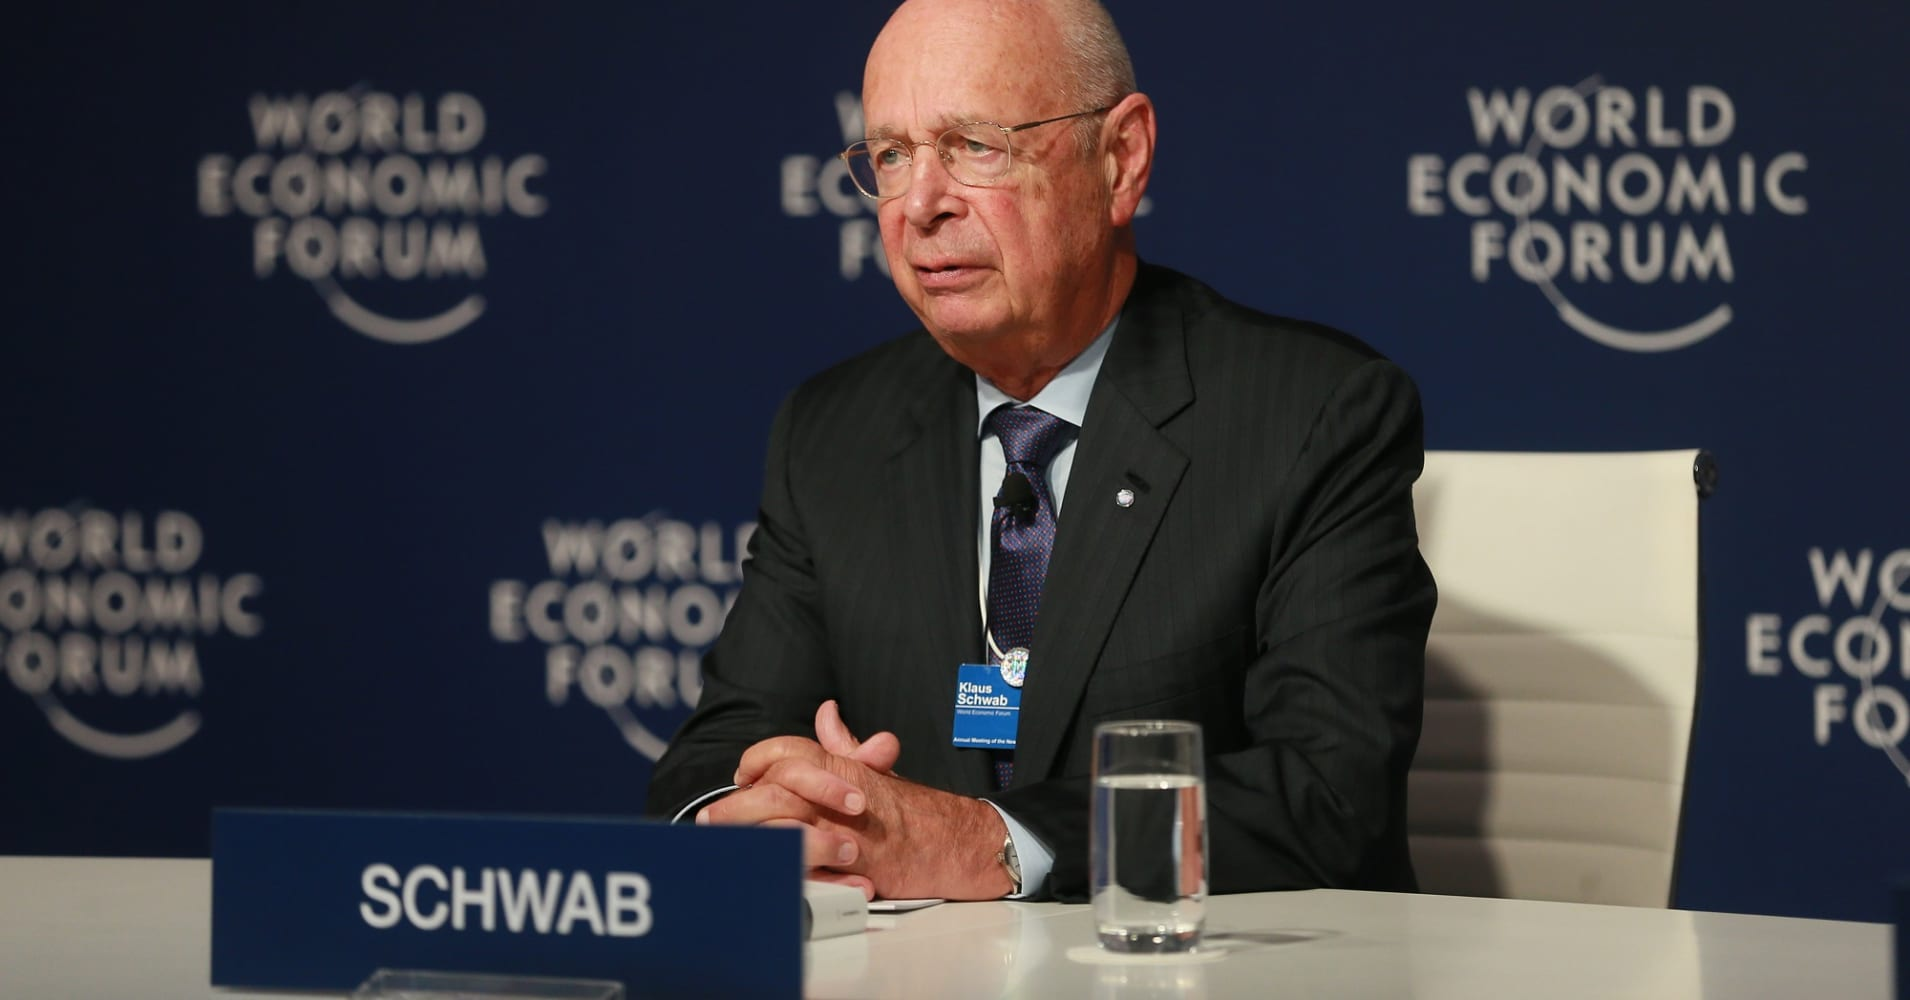 World leaders must identify an 'inclusive' approach to globalization at Davos, WEF founder says